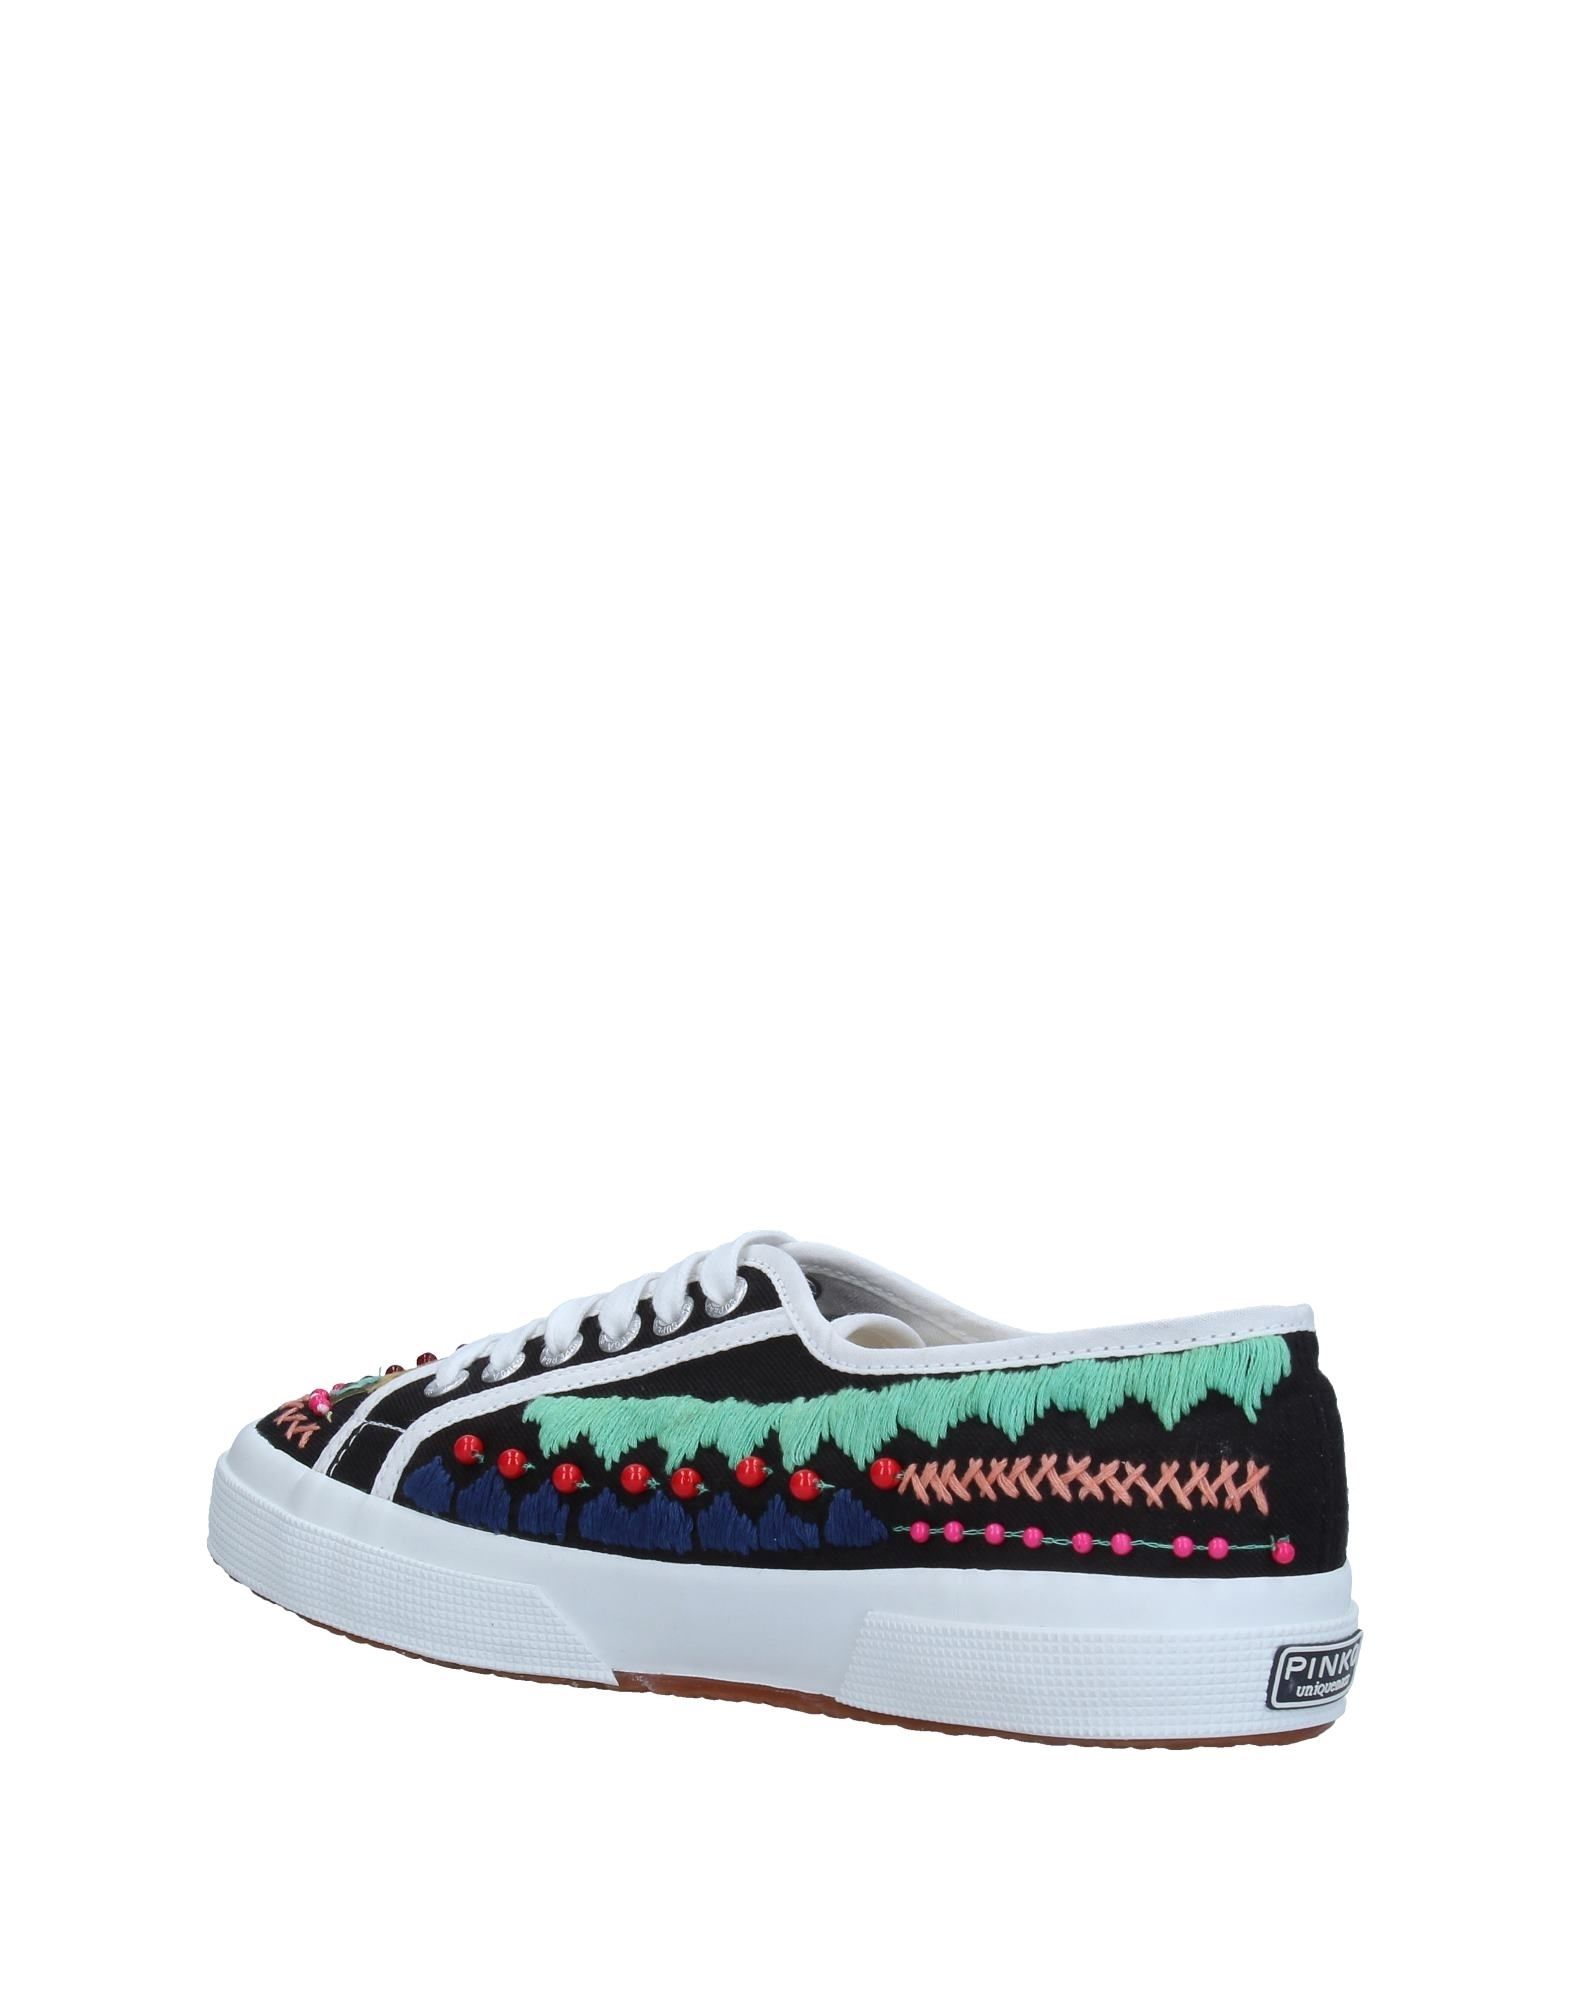 Sneakers Superga® For Pinko Uniqueness Femme - Sneakers Superga® For Pinko Uniqueness sur